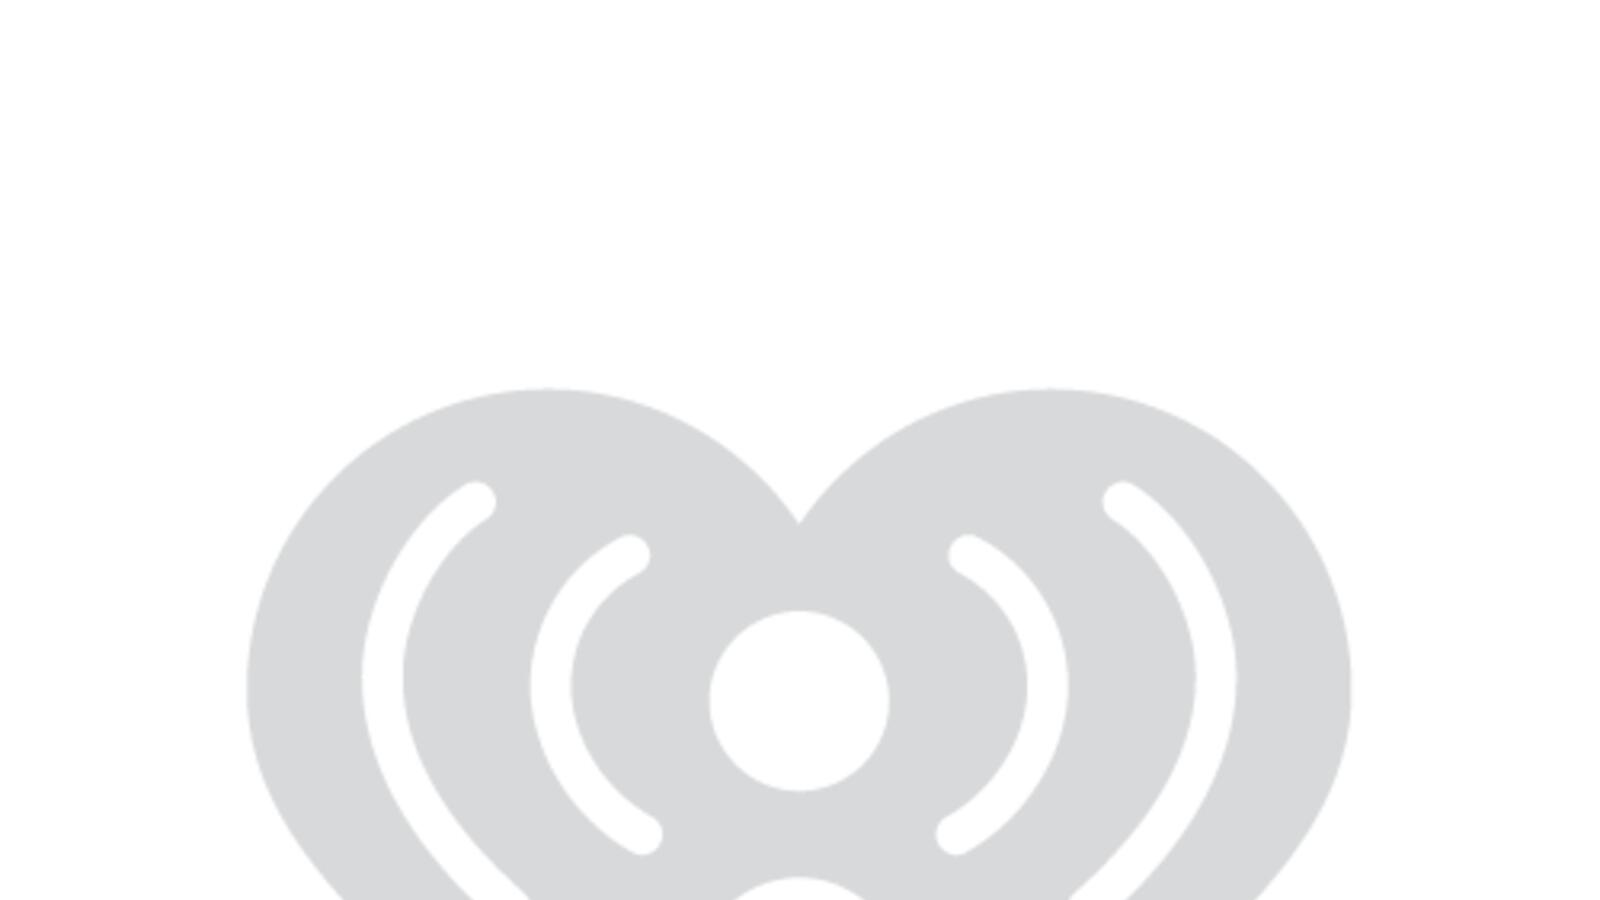 RJ's NFL Week 7 Best Bet: Indianapolis Colts +4 at San Francisco 49ers